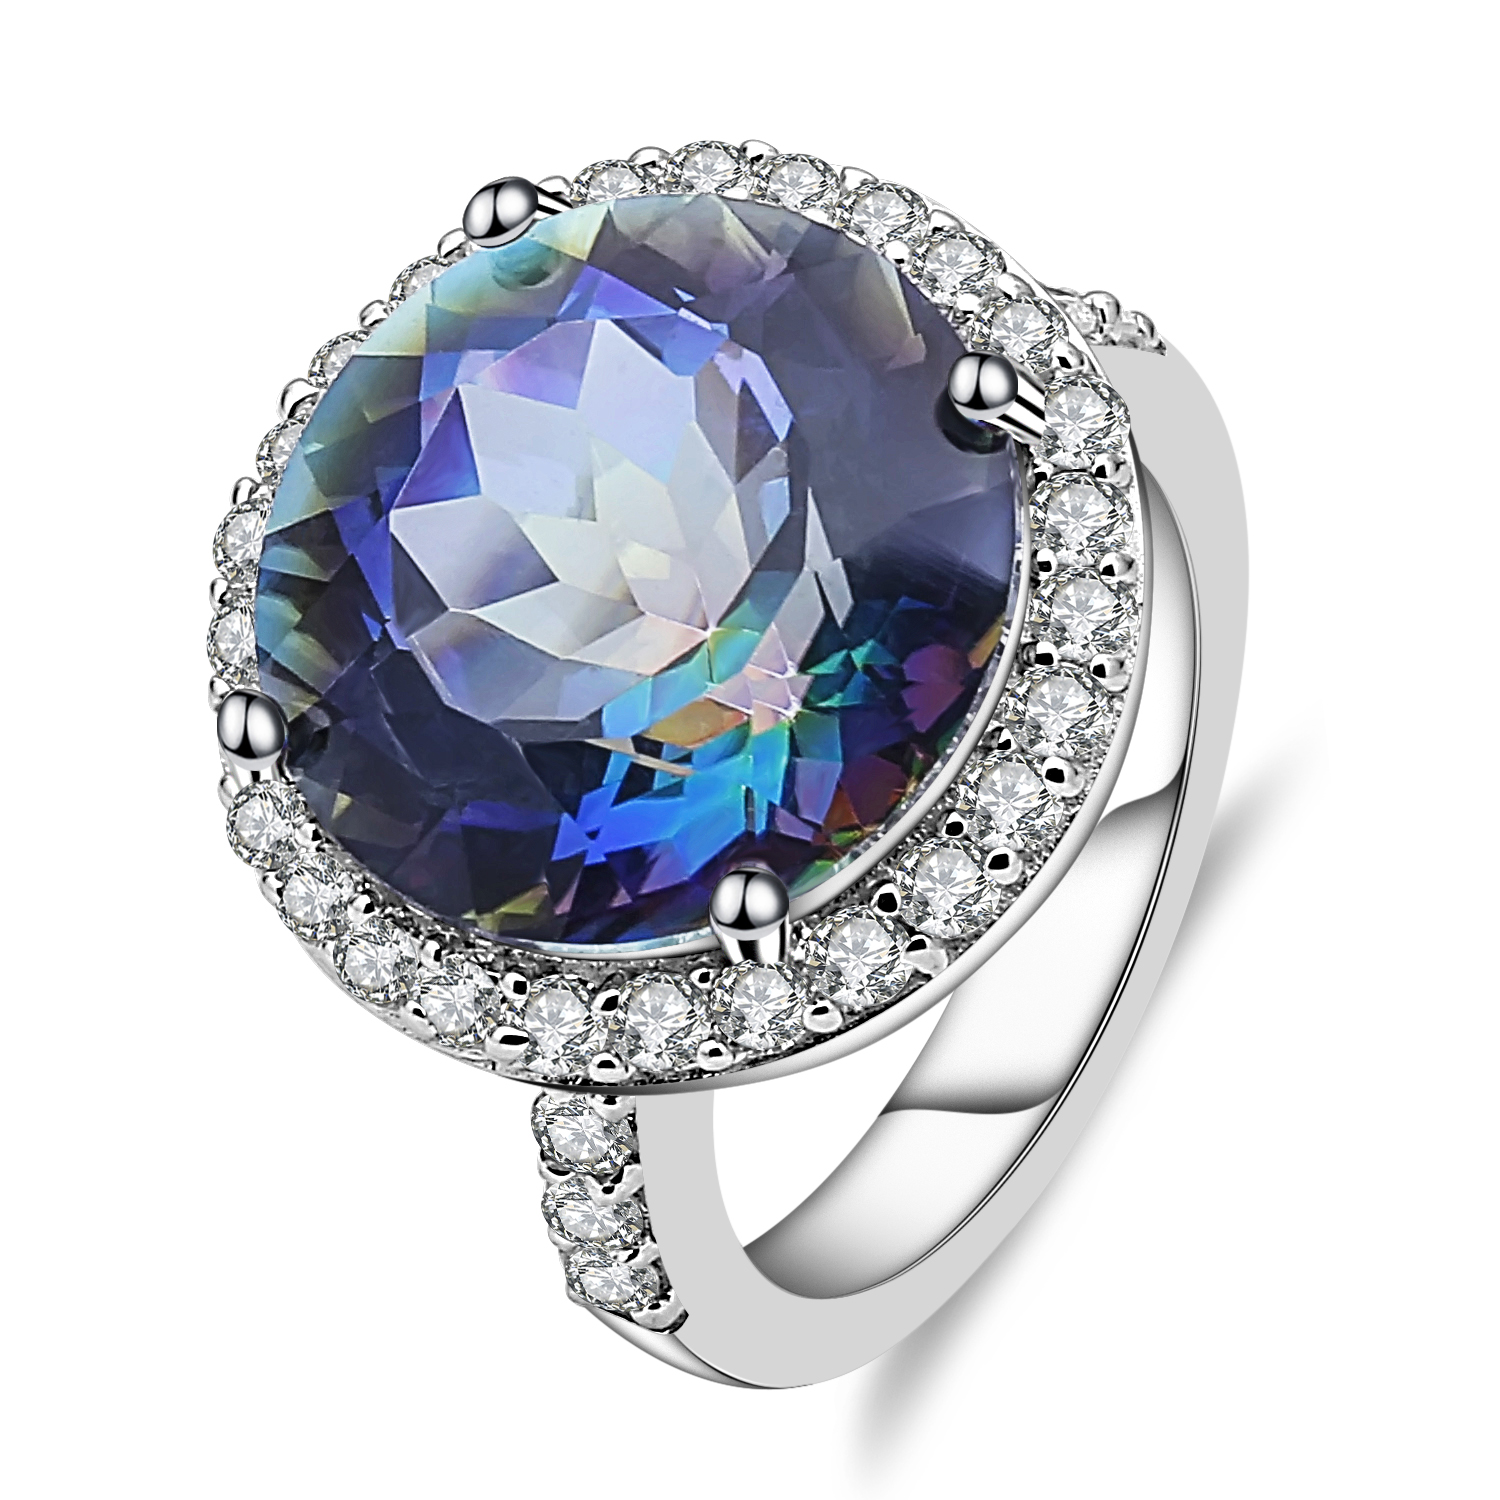 Gem's Ballet 925 Sterling Silver Cocktail Rings 13.00Ct Natural Blueish Mystic Quartz Gemstone Ring For Women Fine Jewelry